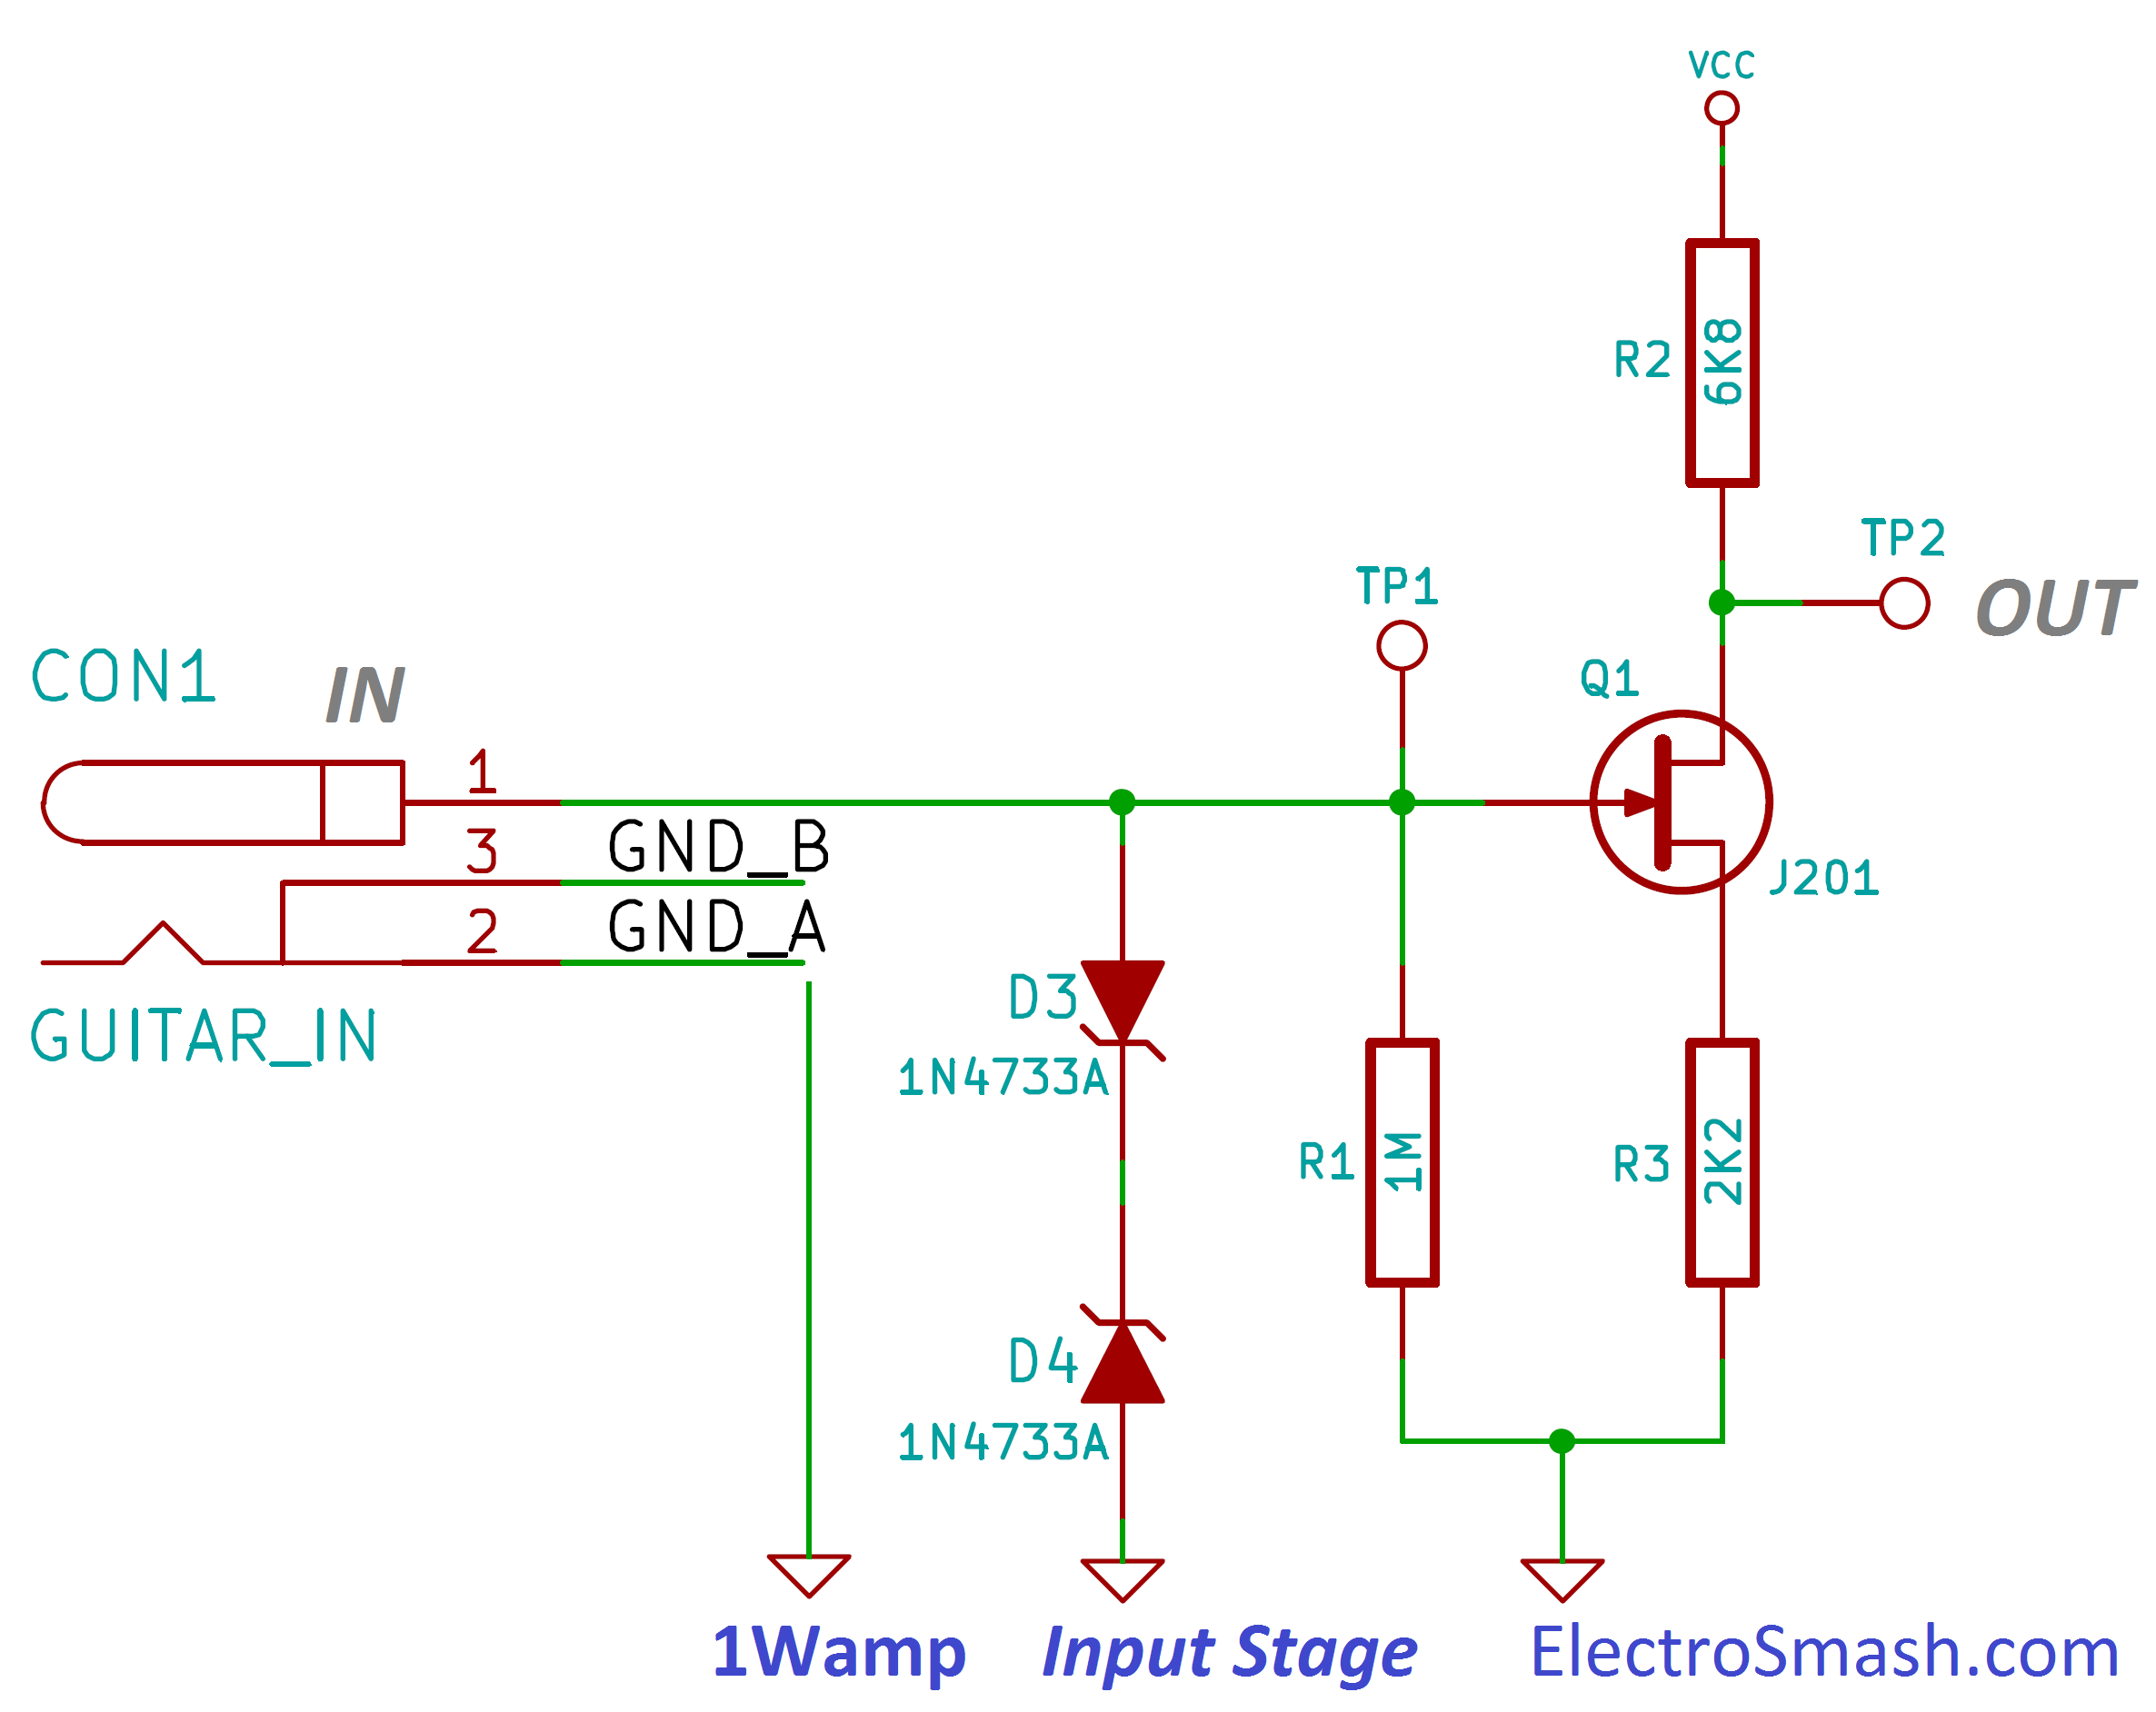 Electrosmash 1wamp Electroc Guitar Amplifier Wiring Diagram Jfet Input Stage